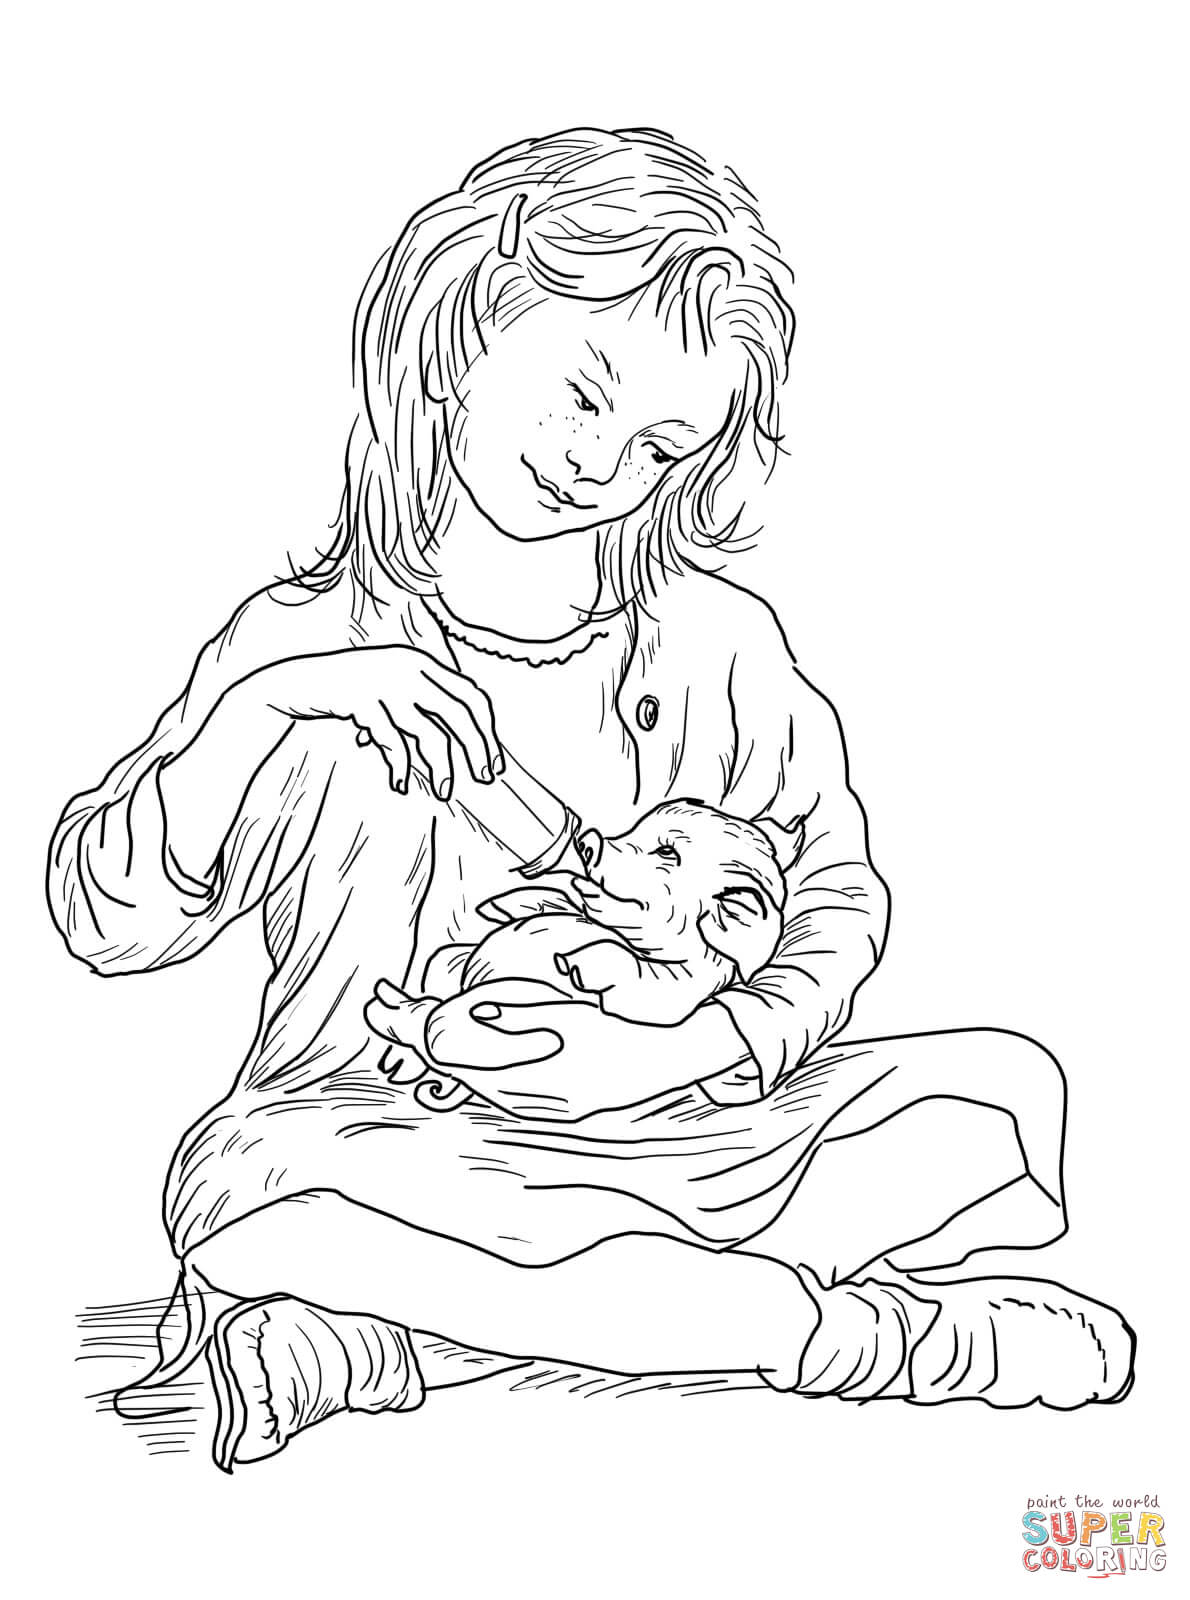 1190x1600 Fern Feeding Wilbur Coloring Page Free Printable Coloring Pages